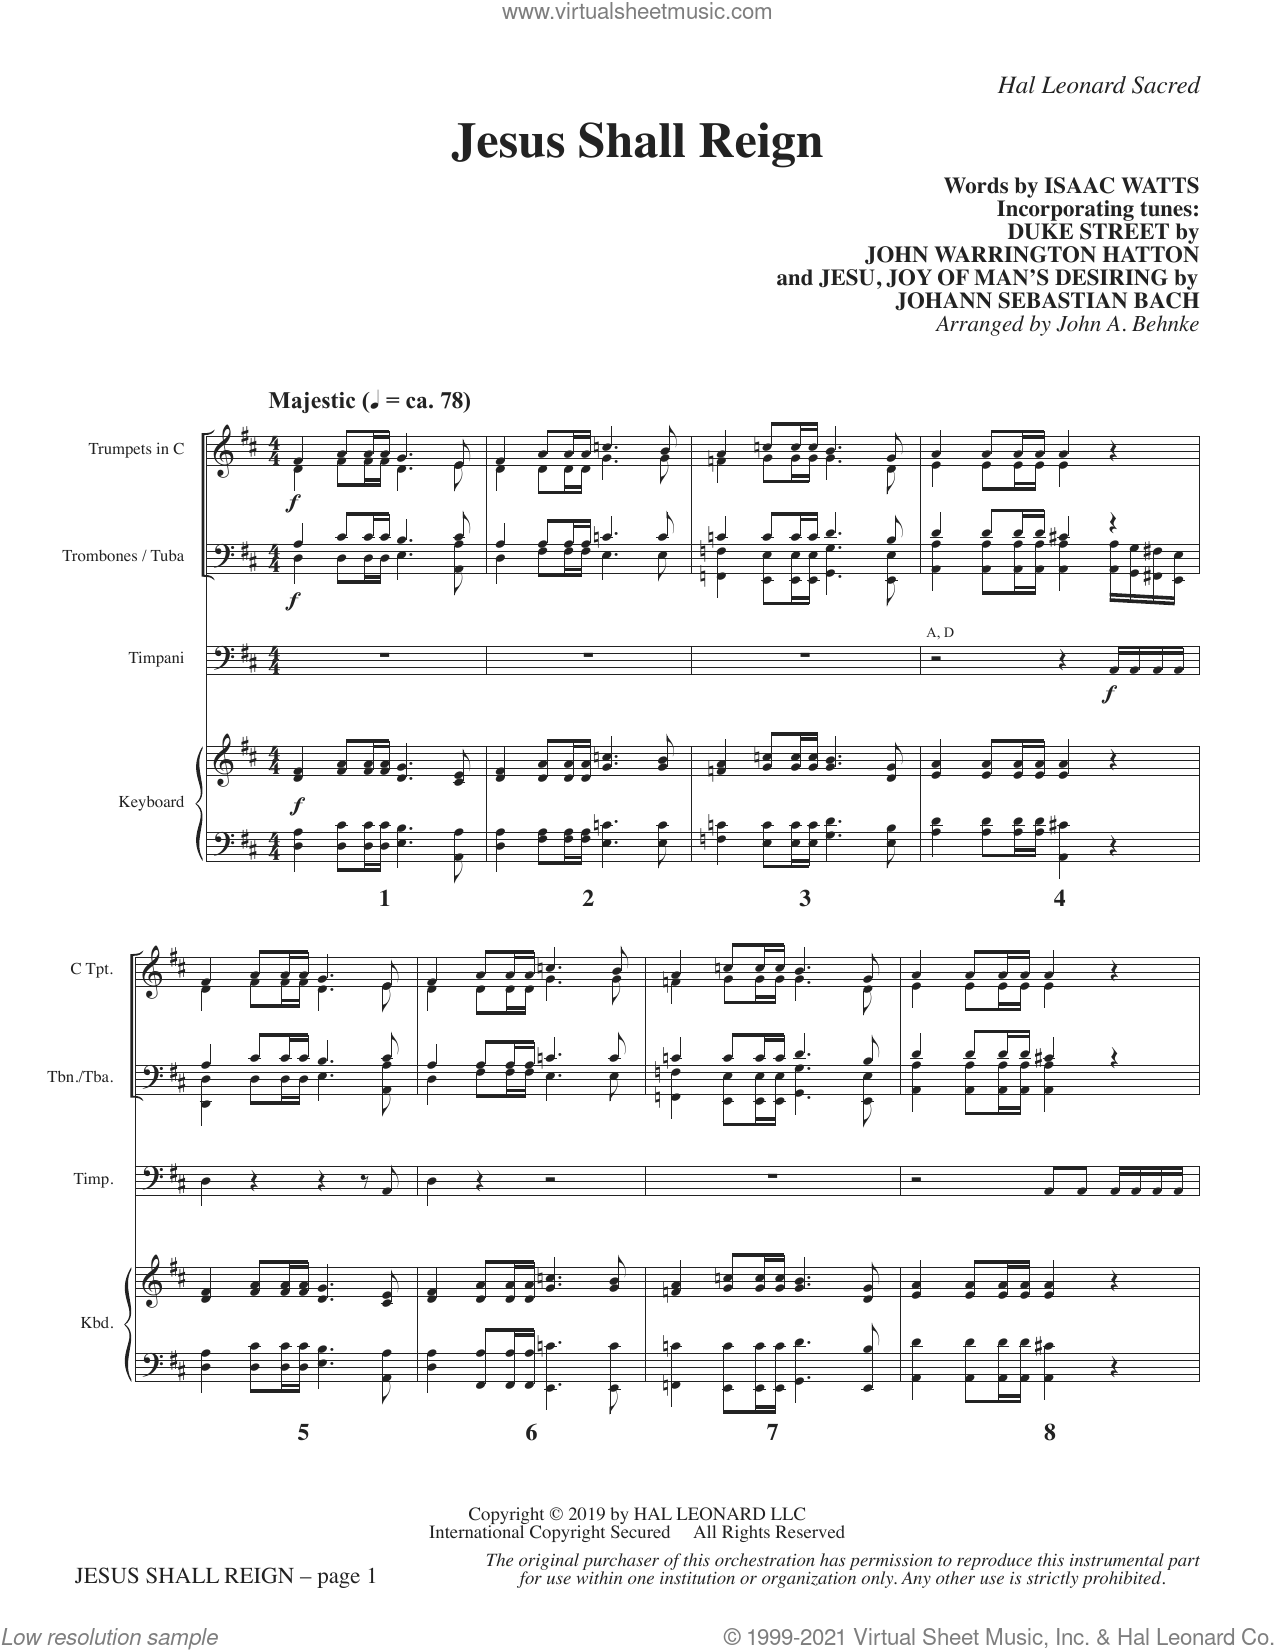 Jesus Shall Reign (arr. John A. Behnke) (COMPLETE) sheet music for orchestra/band by Johann Sebastian Bach, Isaac Watts, John A. Behnke and John Hatton, intermediate skill level